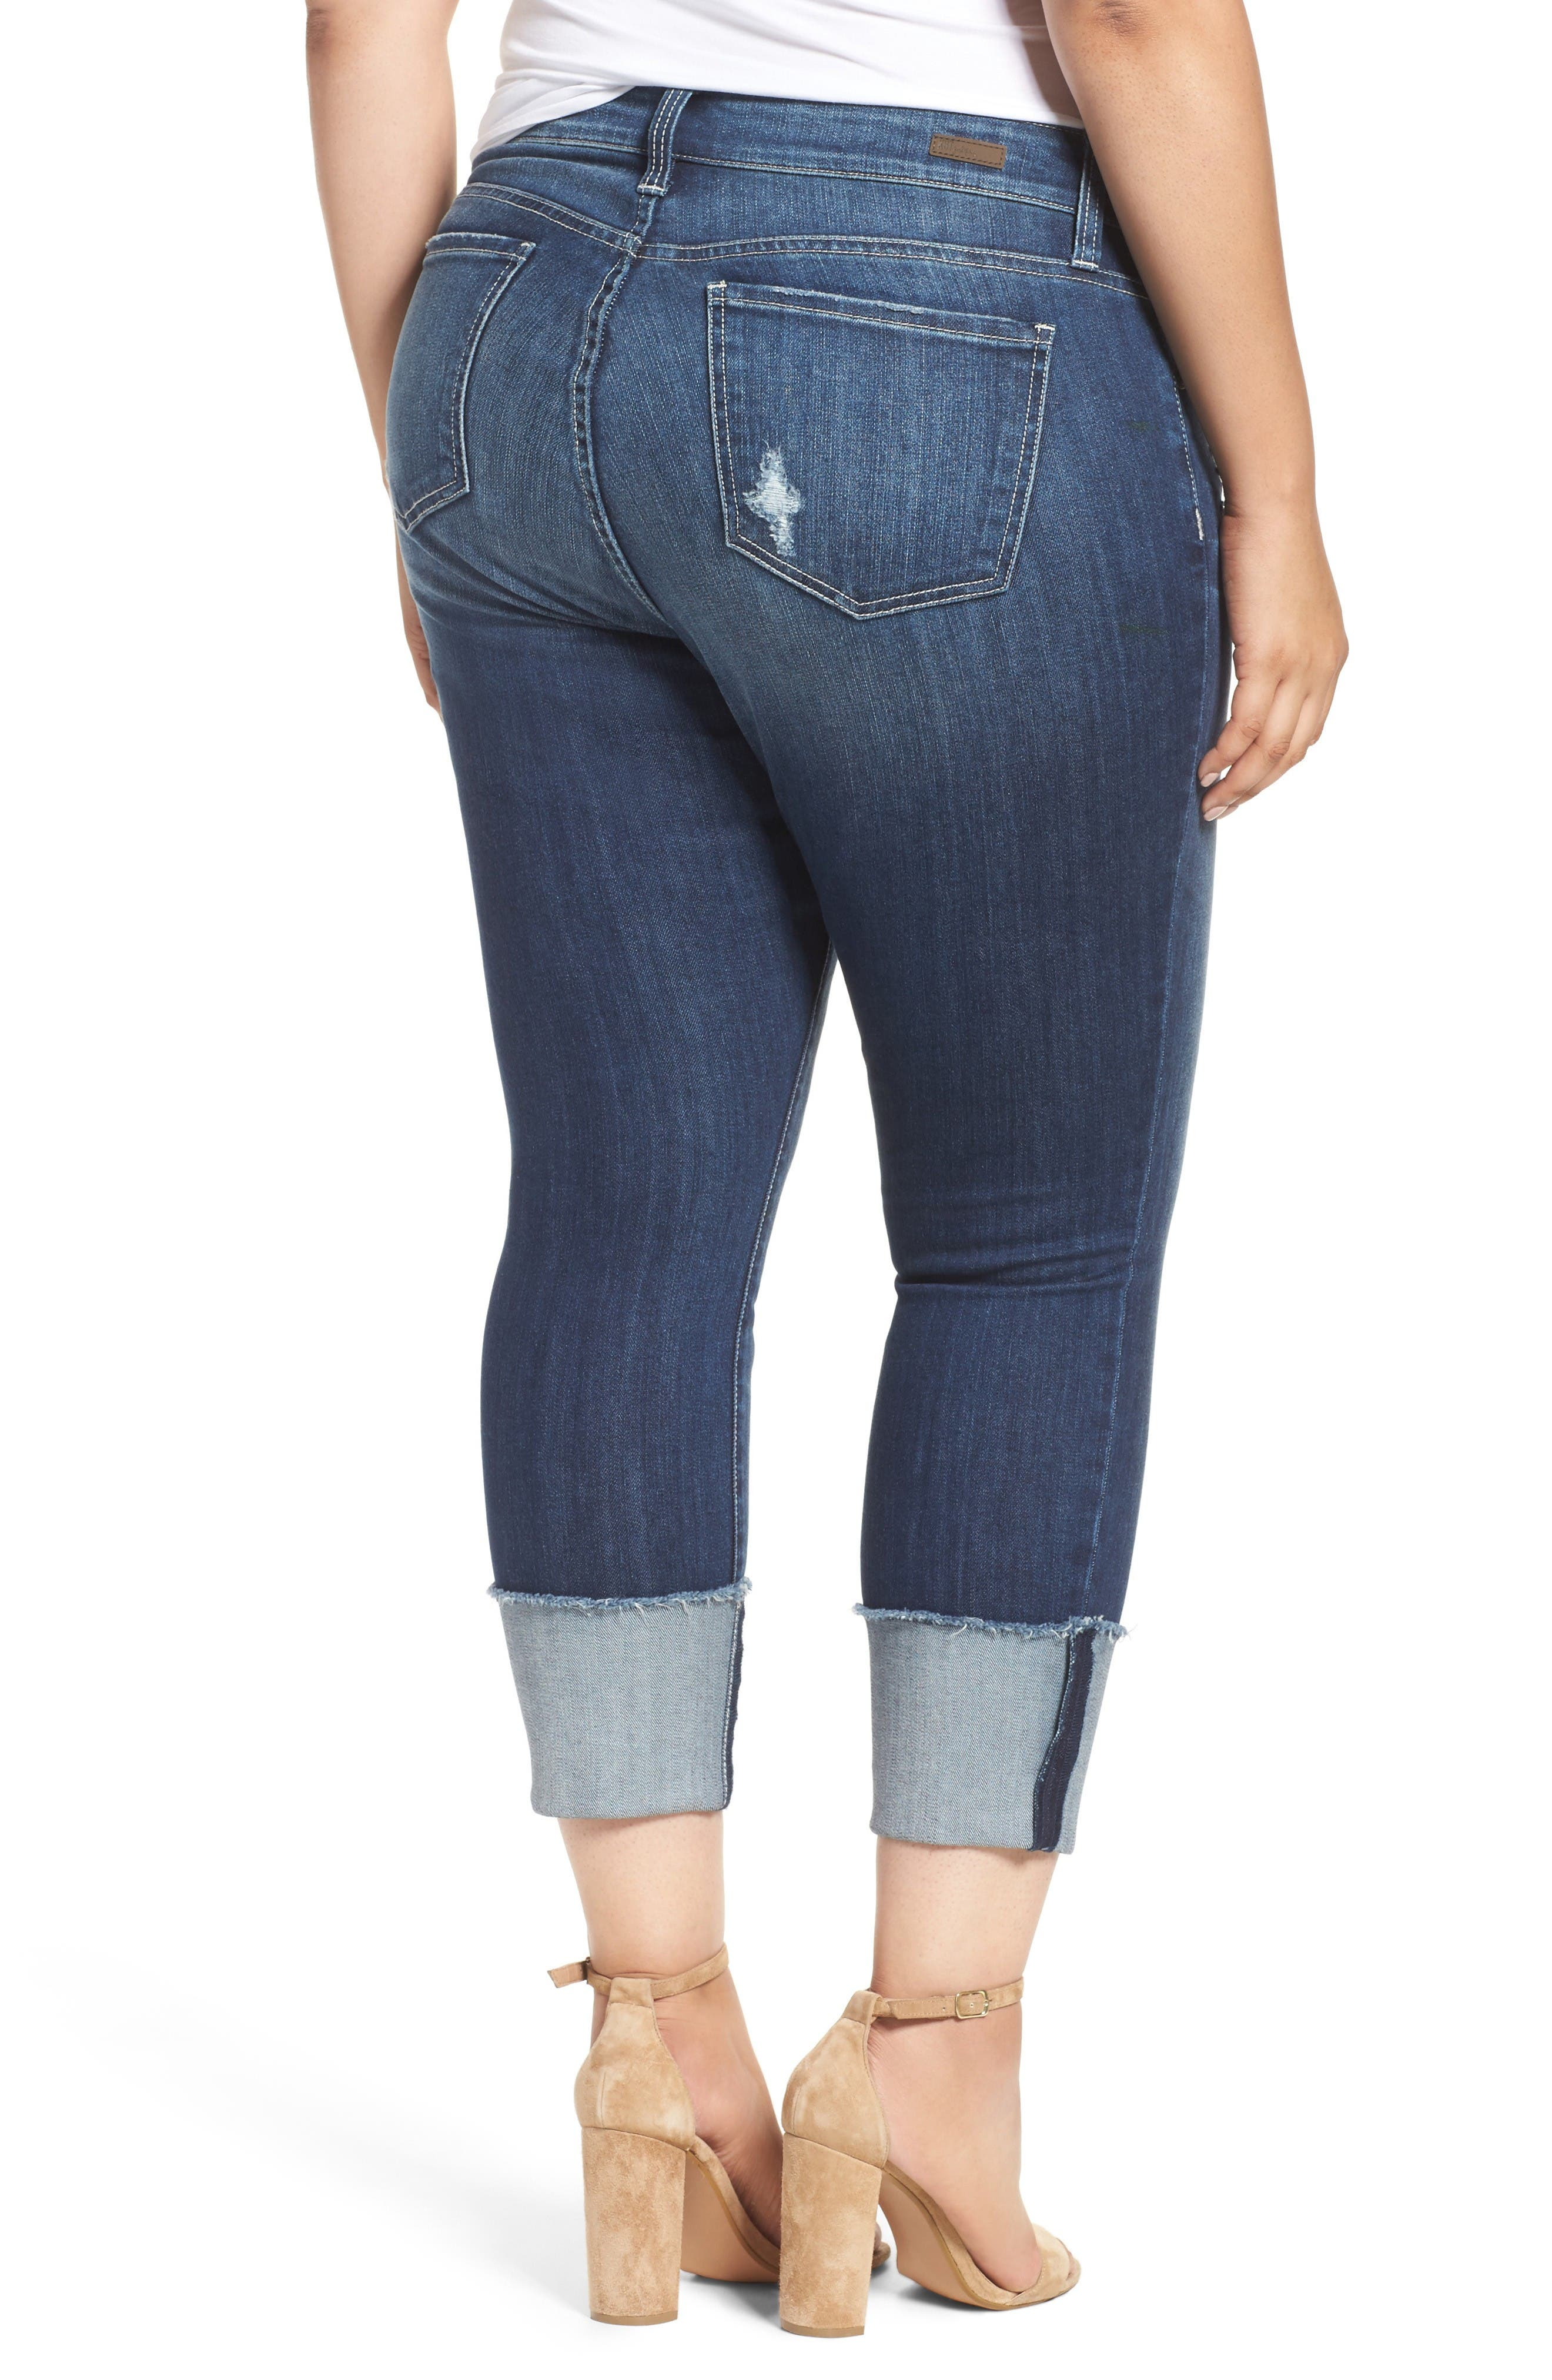 Alternate Image 2  - KUT from the Kloth Cameron Cuffed Straight Leg Jeans (Arresting) (Plus Size)